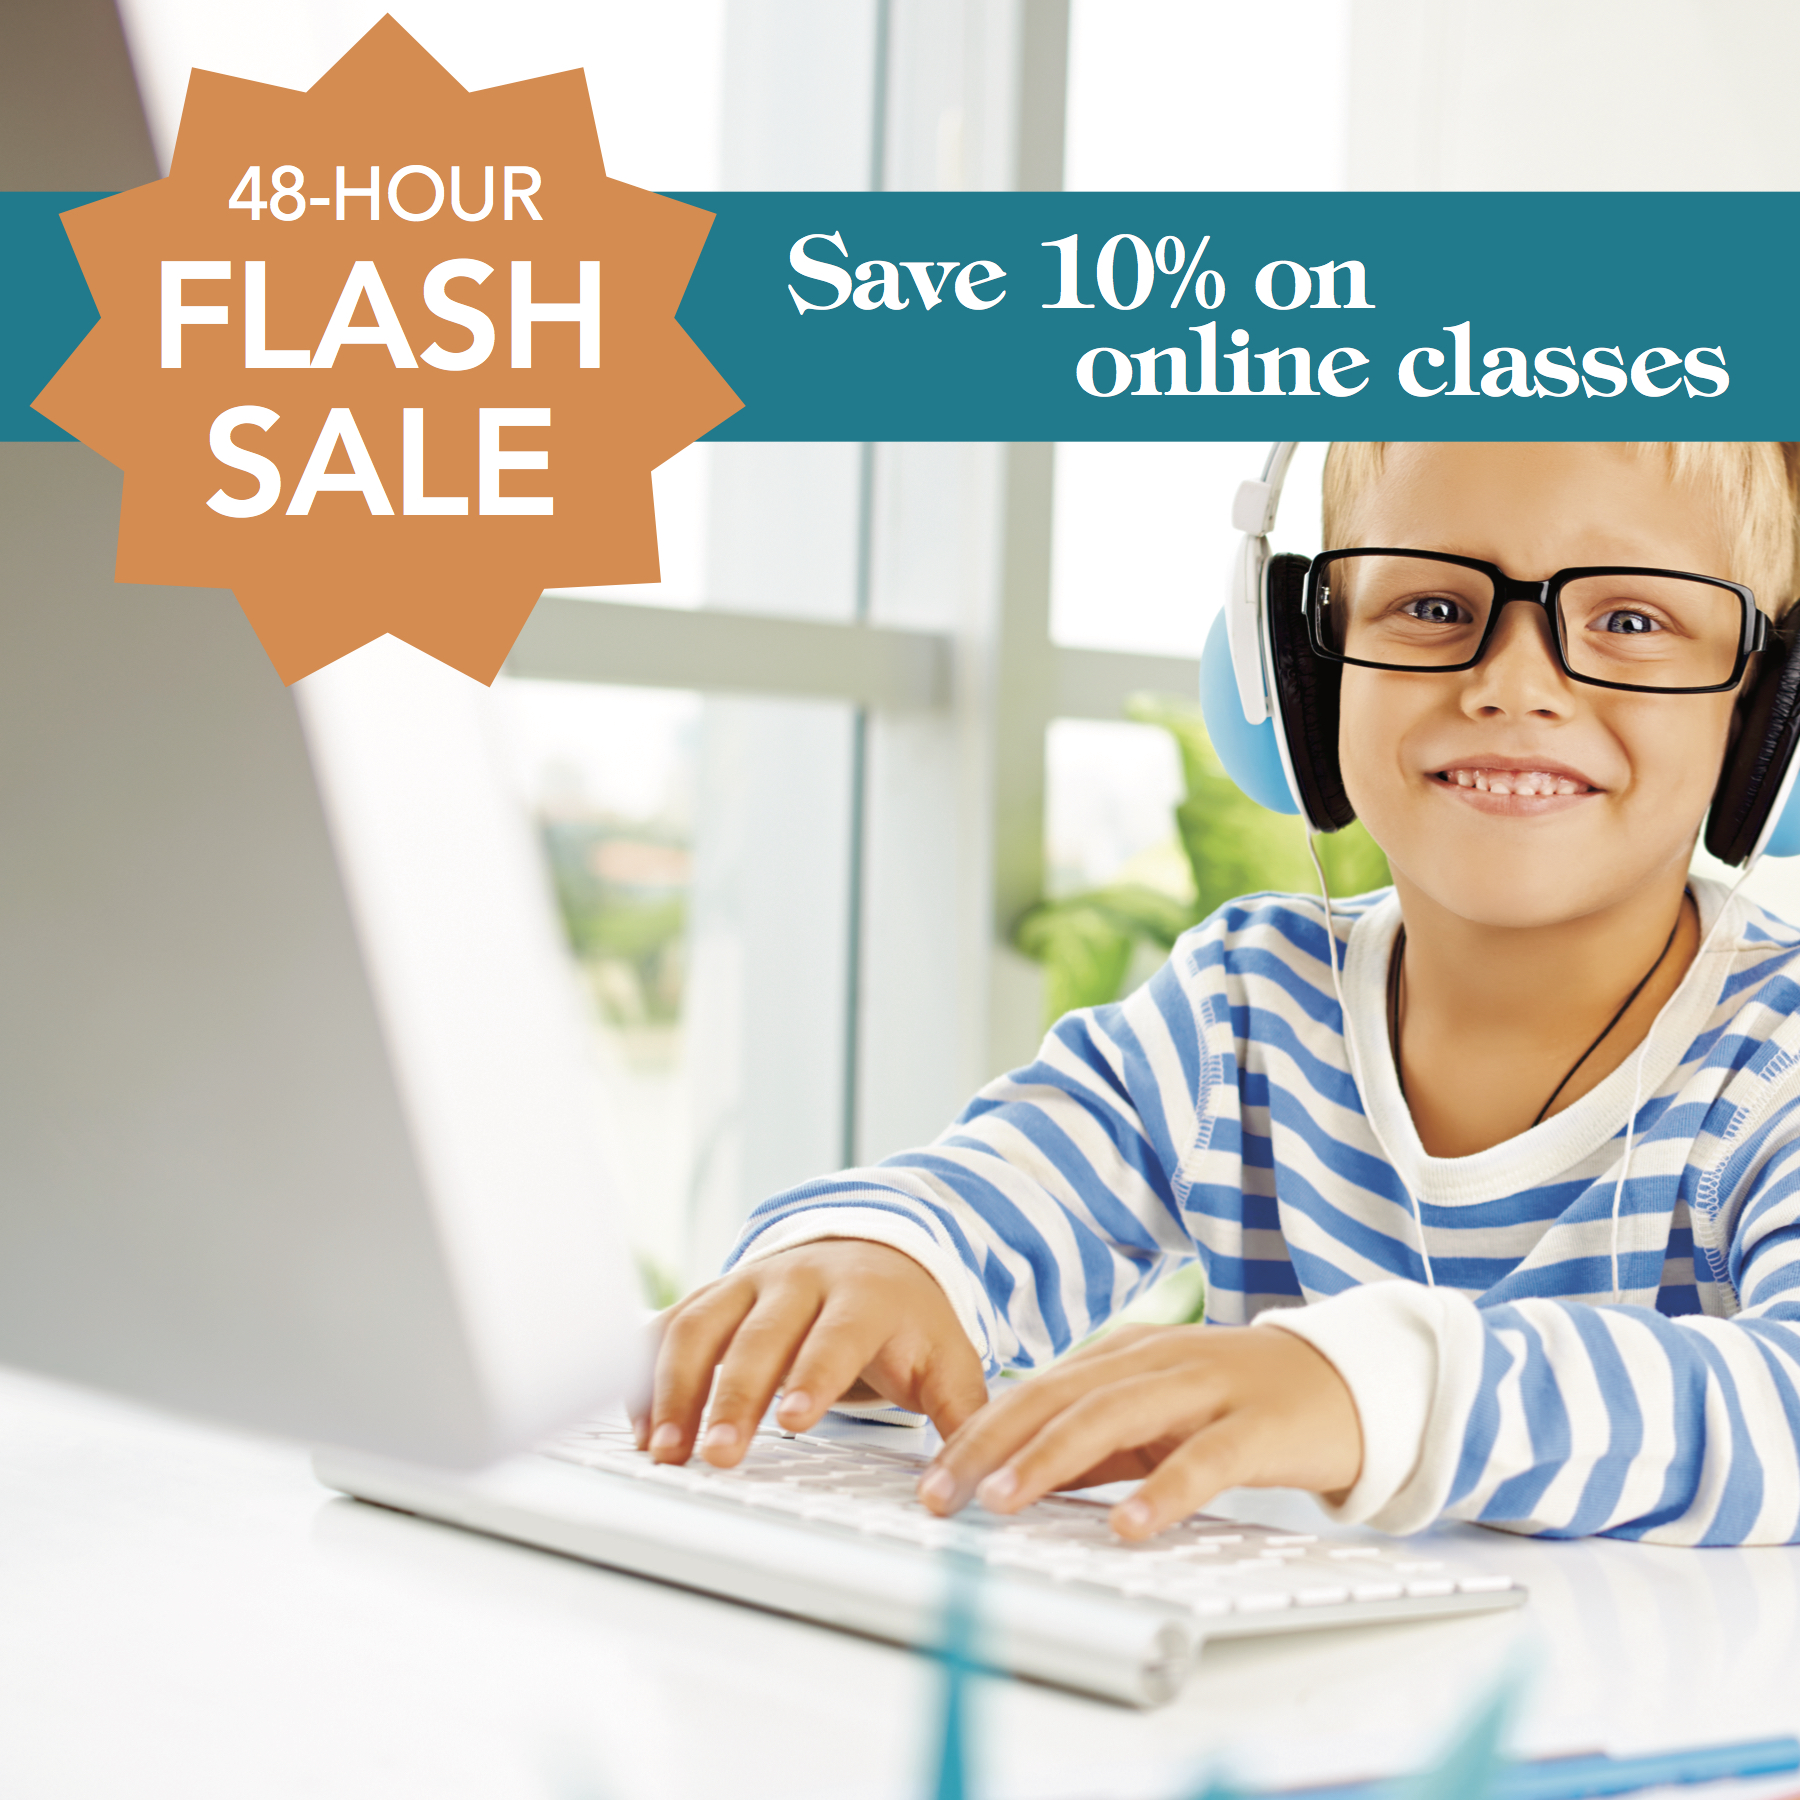 It's a Flash Sale! Save 10% on HSL homeschool classes for two days!